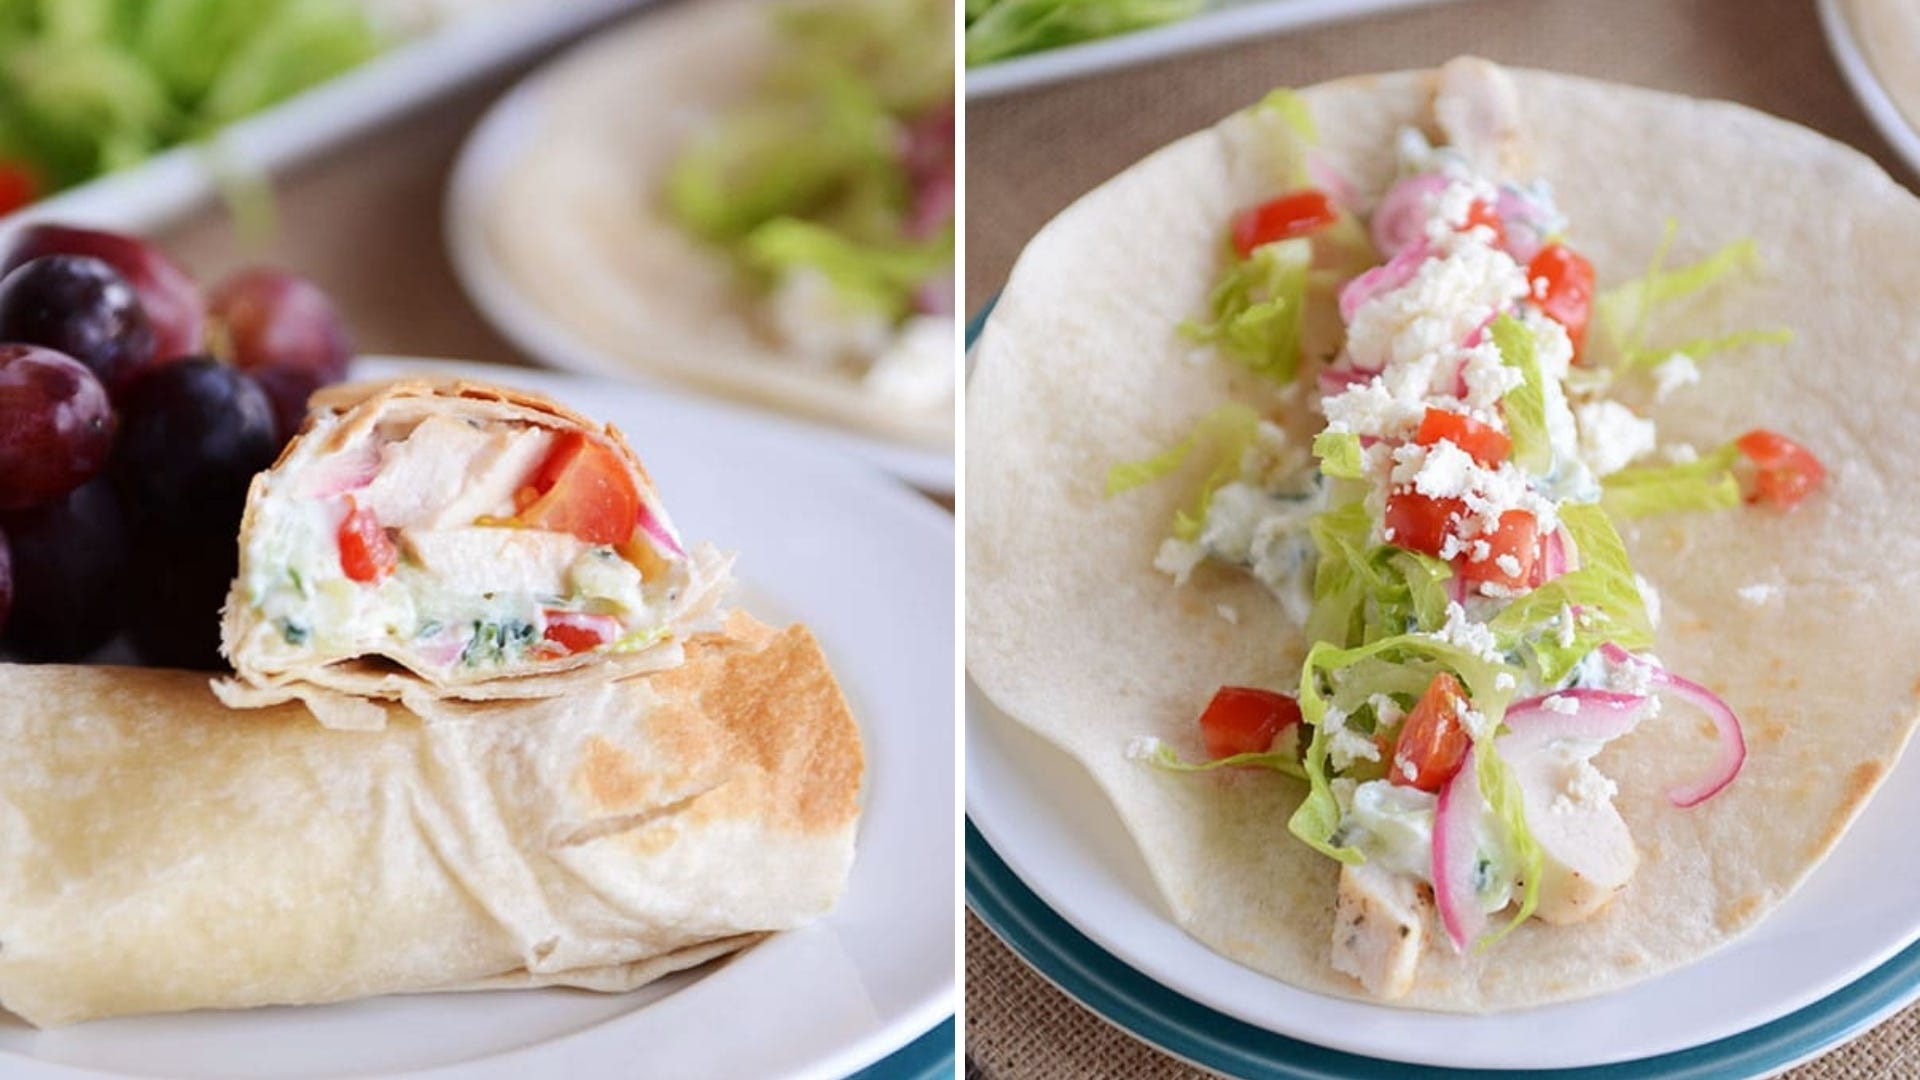 Two photos of a burrito filled with chicken, lettuce, tomatoes, and onions